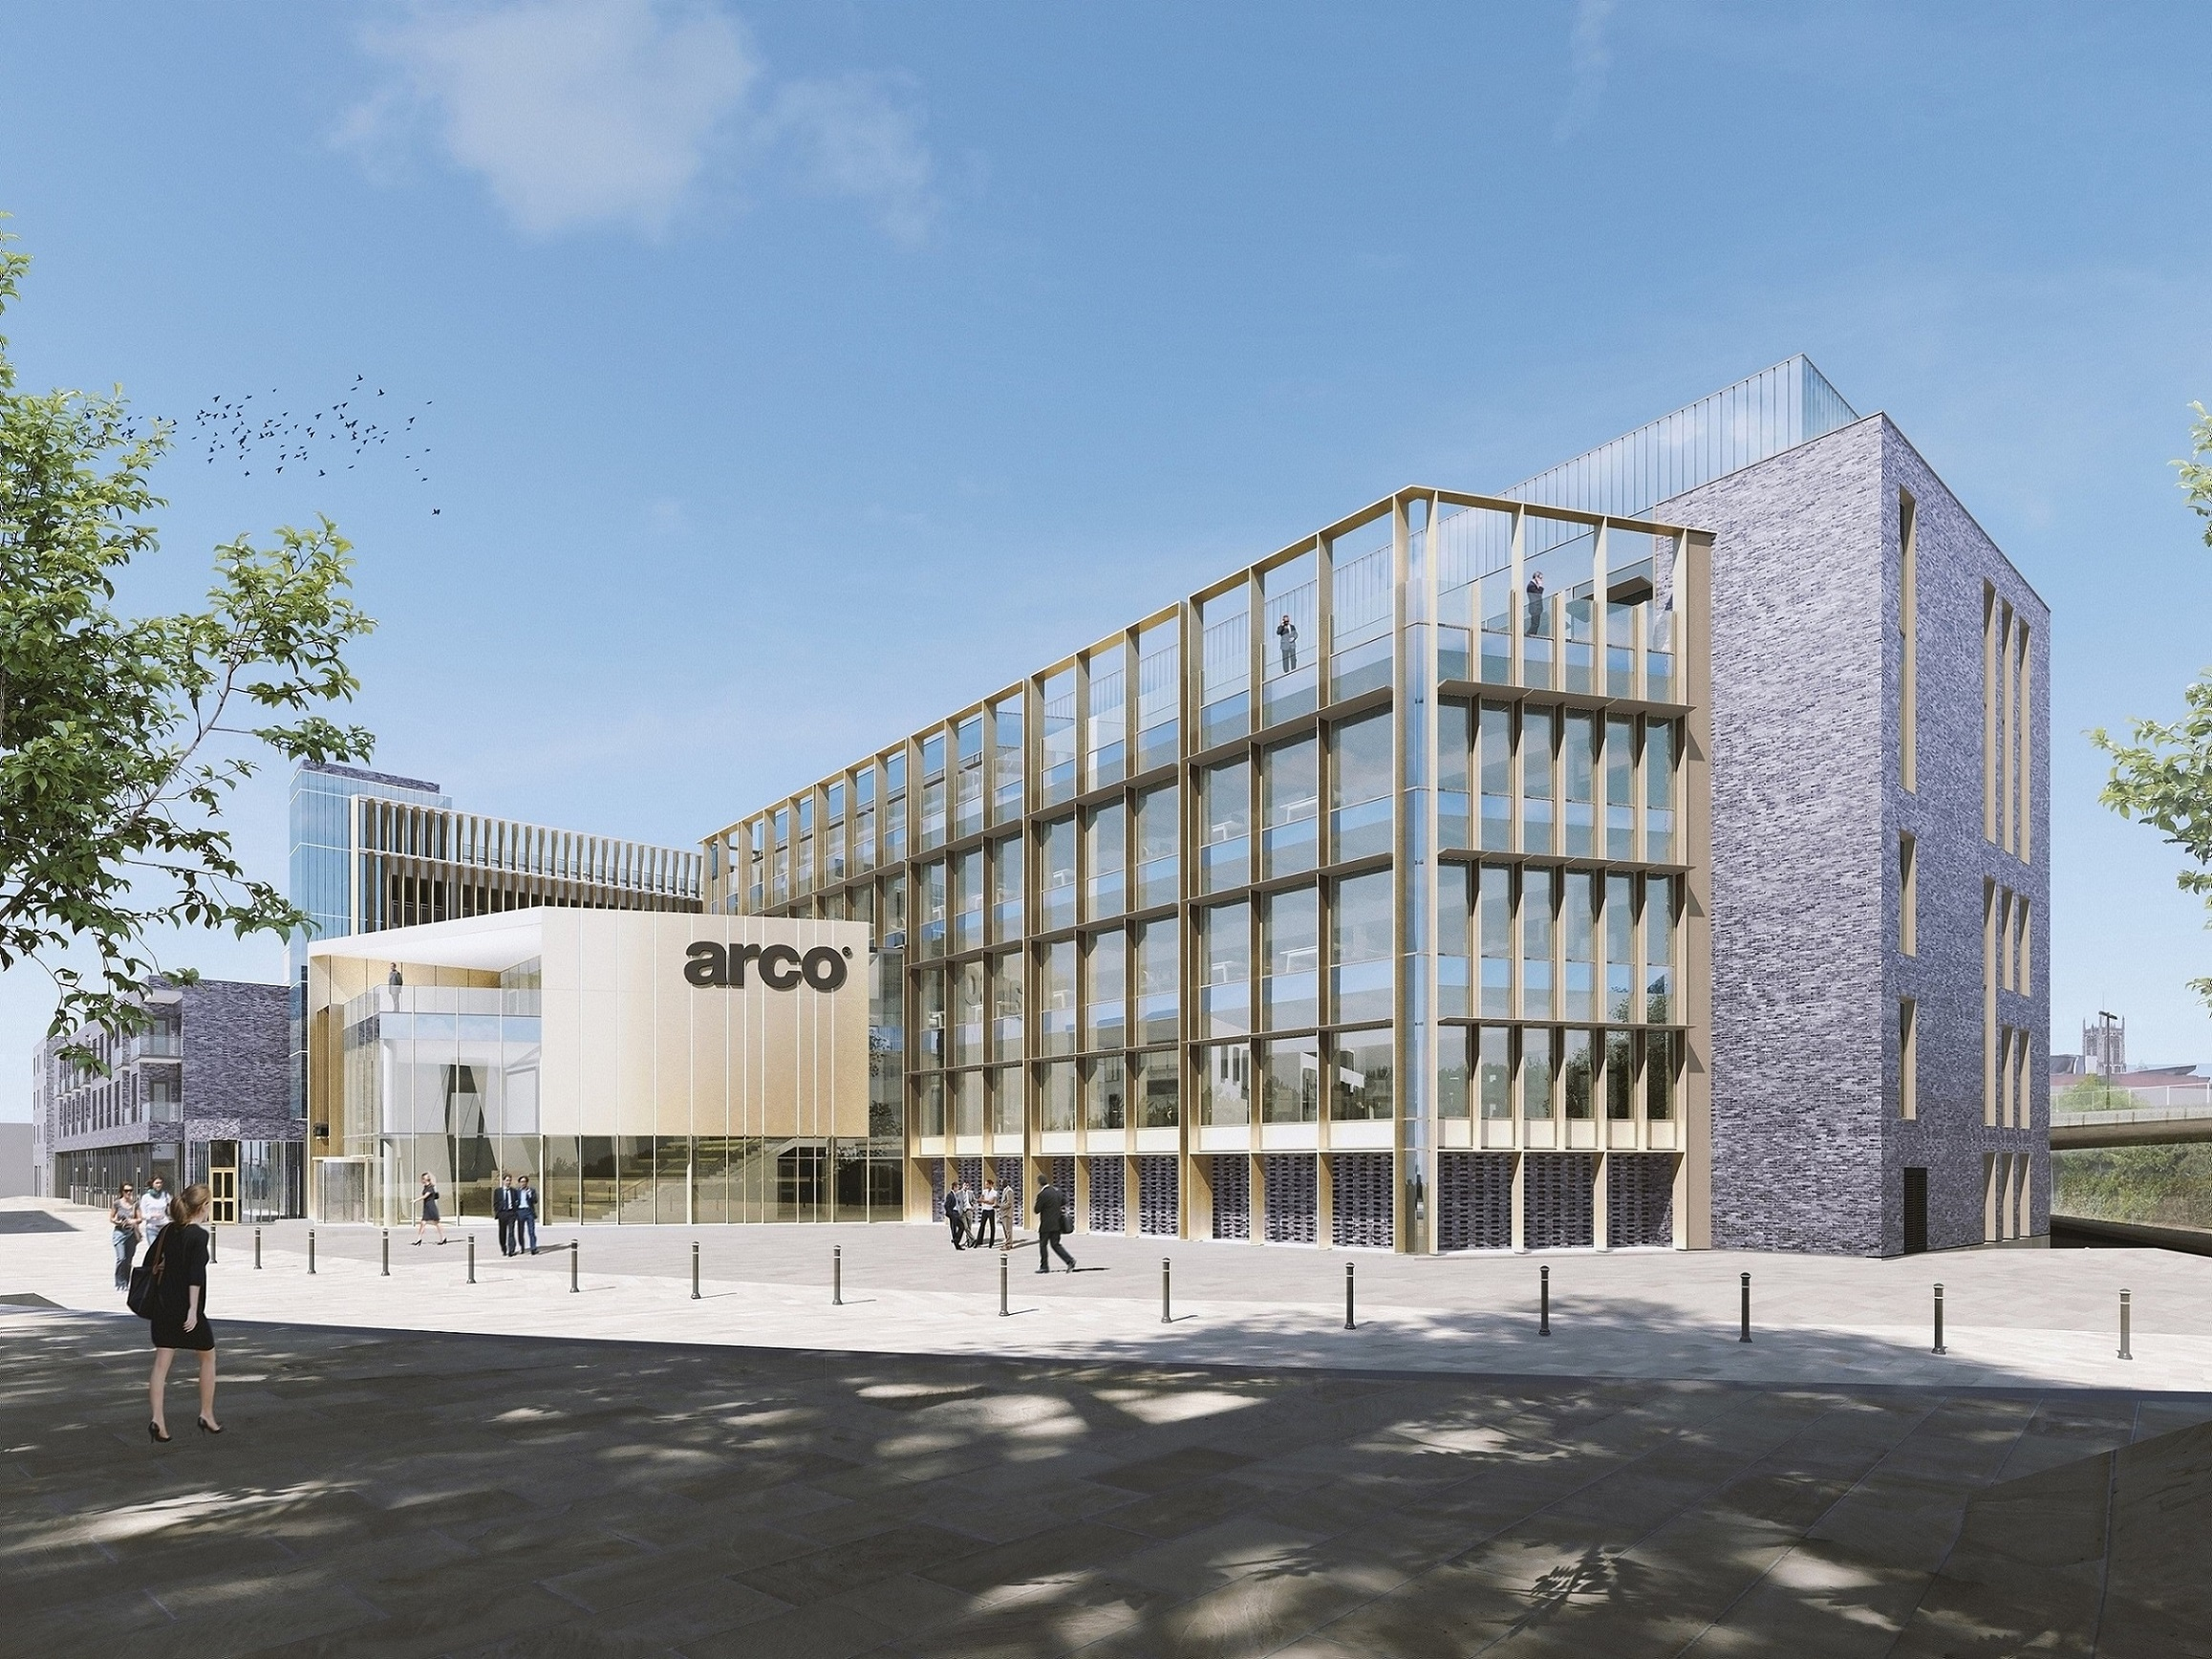 An impressive new headquarters for Arco, the UK's leading safety company, is the centrepiece of the latest phase of the regeneration of Hull's Fruit Market. The development, including a 350 space multi-storey car park, has been approved by Hull City Council's Planning Committee.